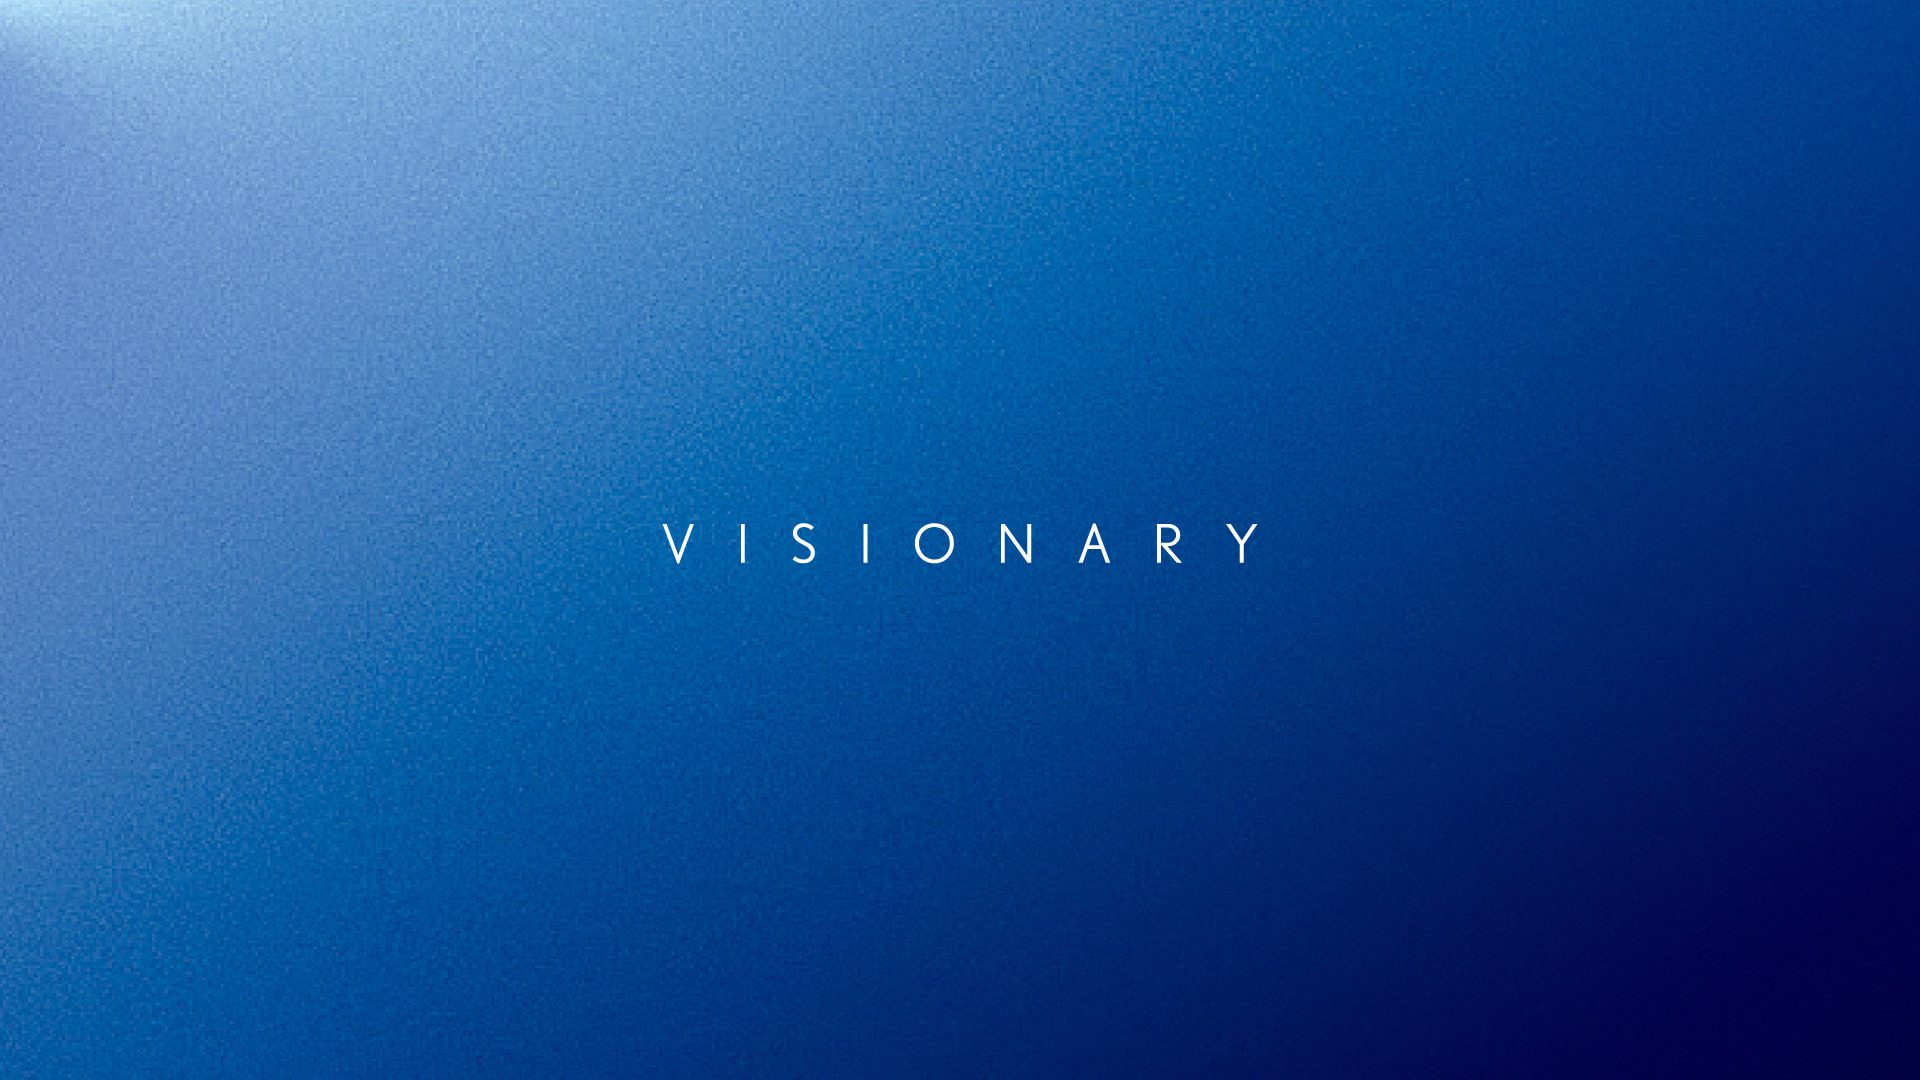 VISIONARY by Lexus